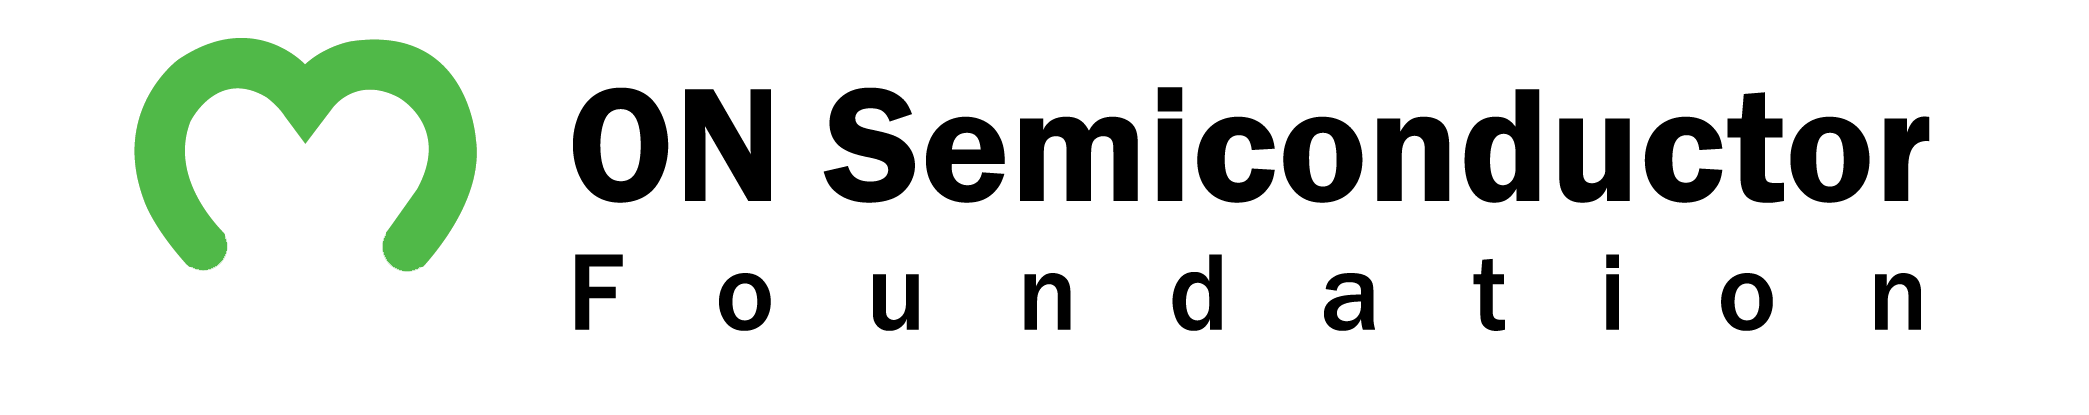 ON Semiconductor Foundation logo